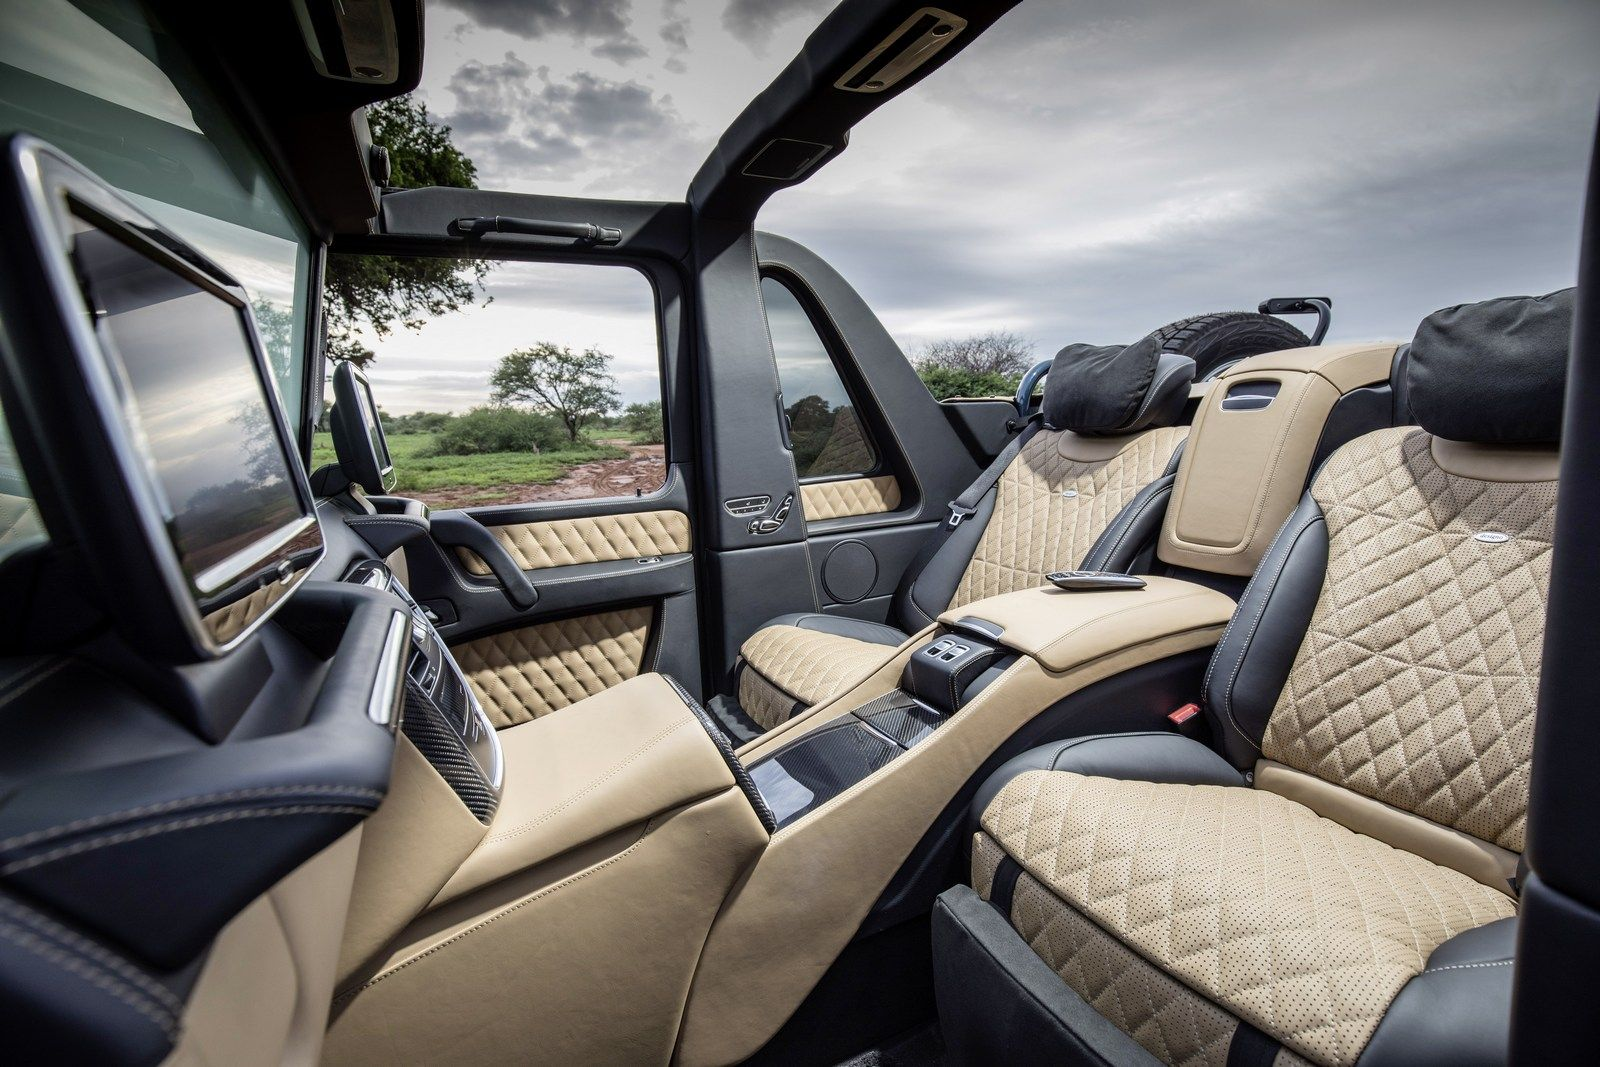 Final Mercedes Maybach G650 Landaulet To Be Auctioned For Charity